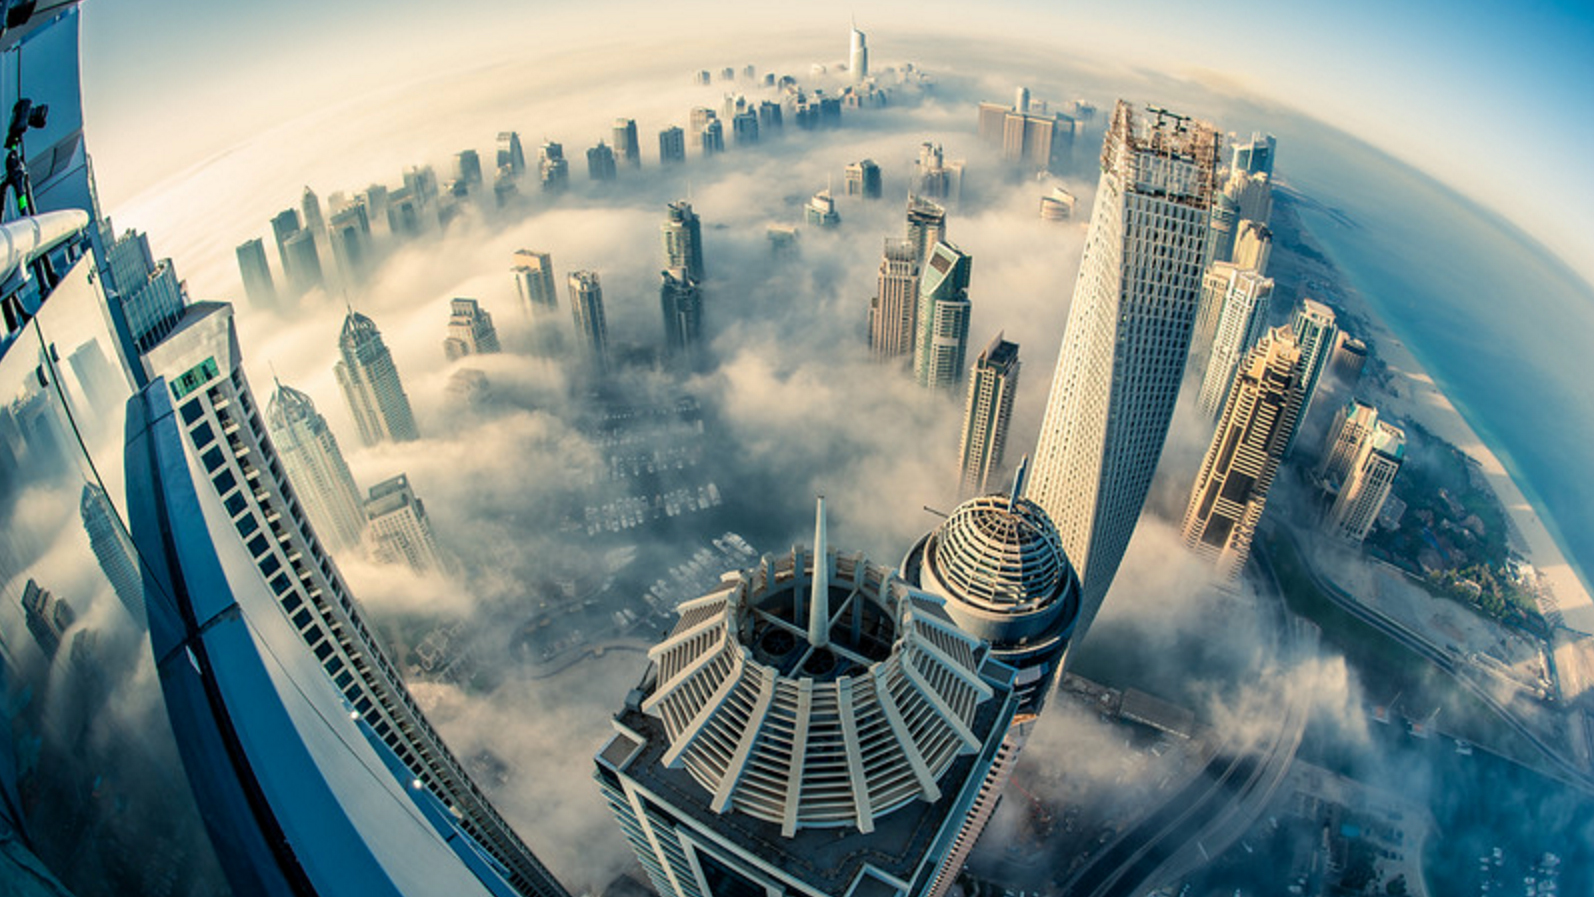 10 inspiring examples of architectural photography